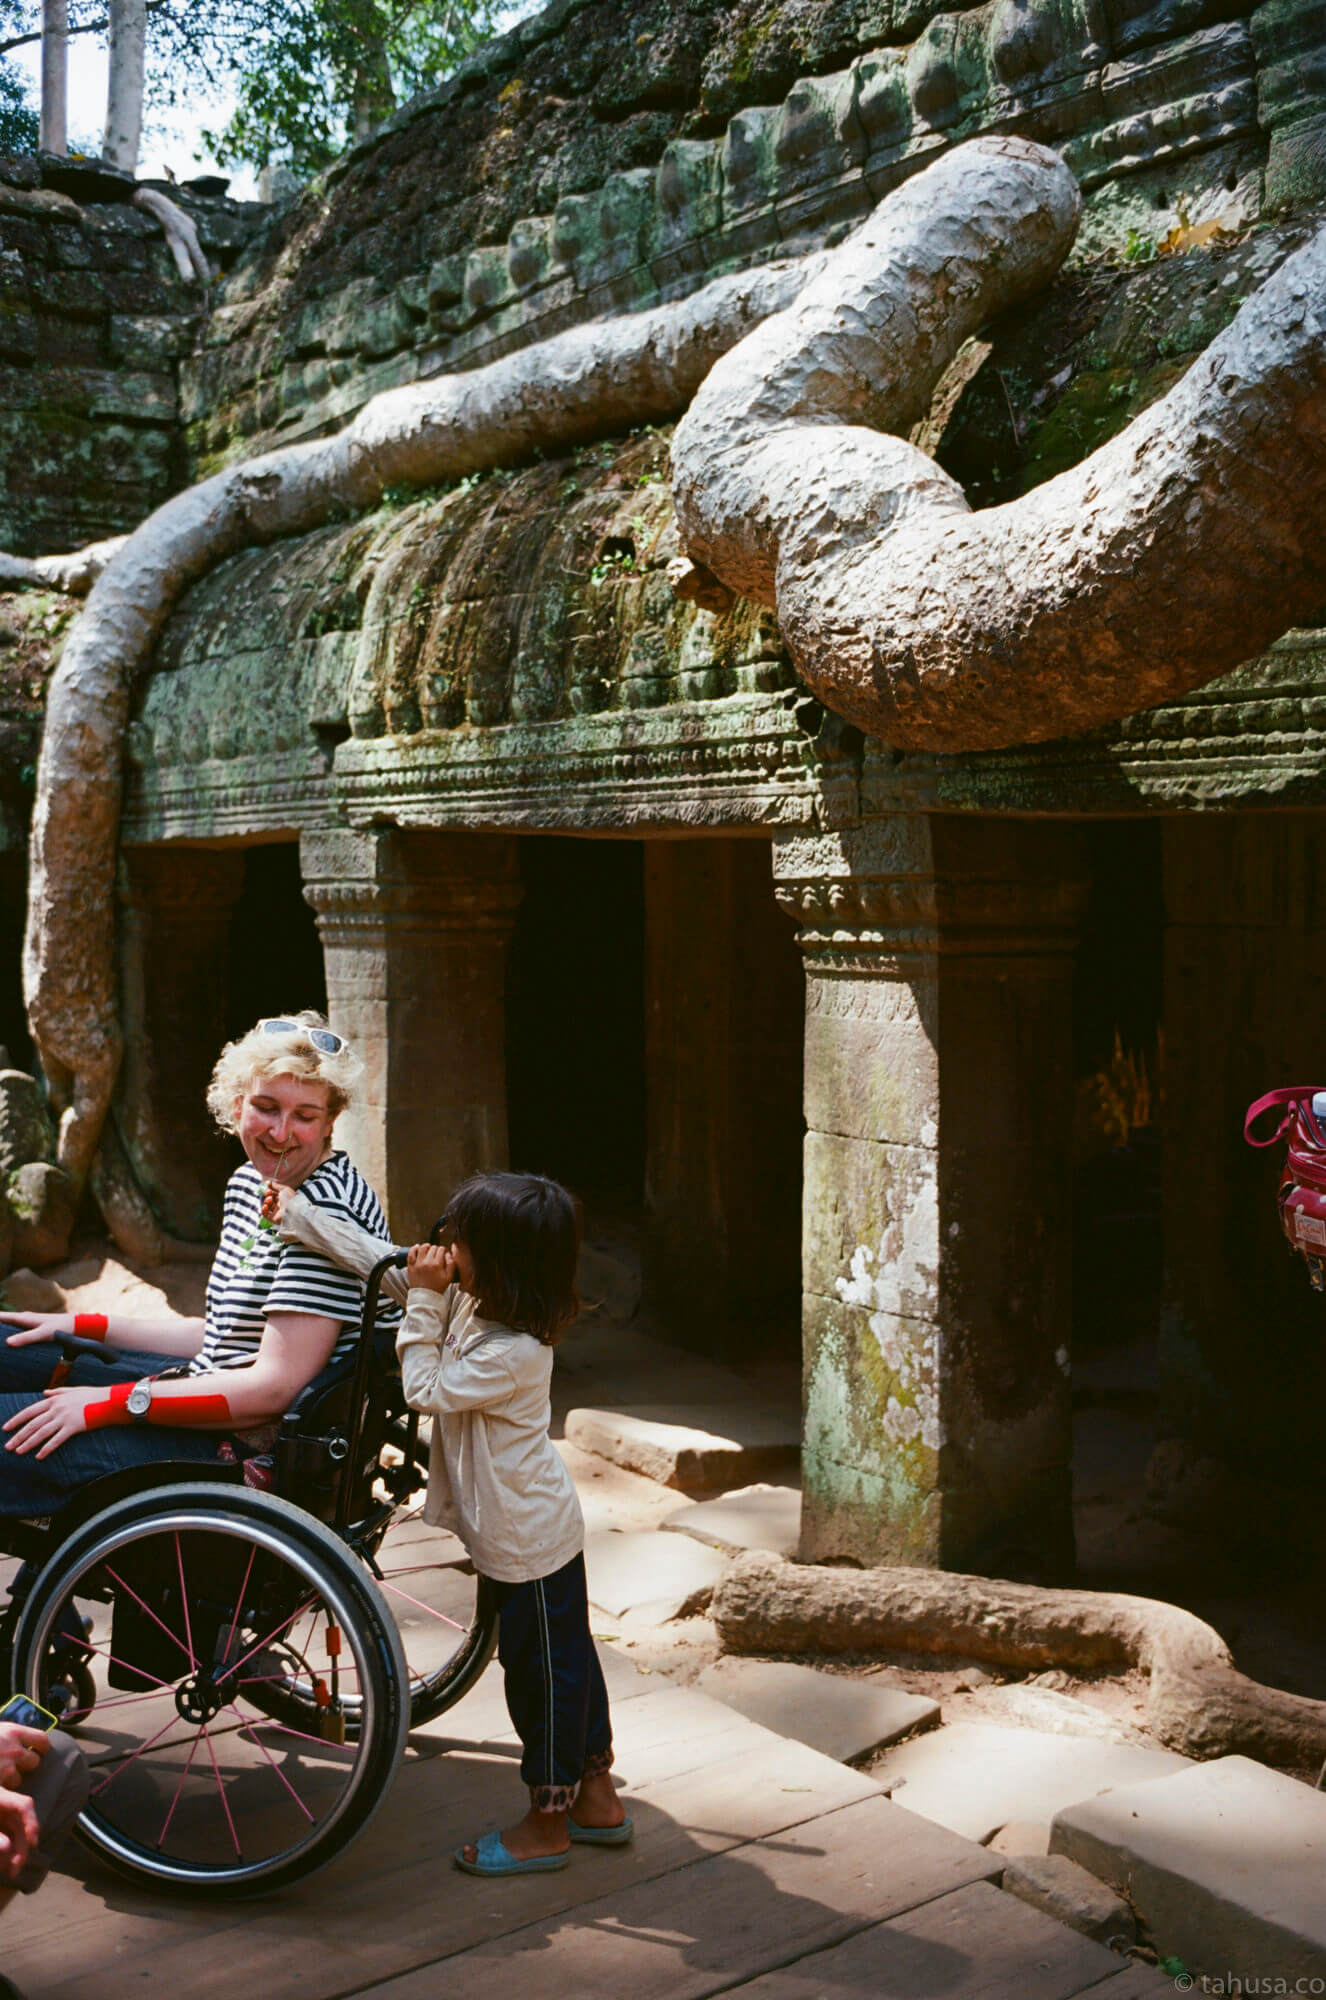 cute-kid-giving-flower-to-the-disabled-lady-warm-scene-in-angkor-wat-cambodia-travel-photography-using-ektar-100-kodak-and-summicron-35mm-f2-8elements-v1-leica-film